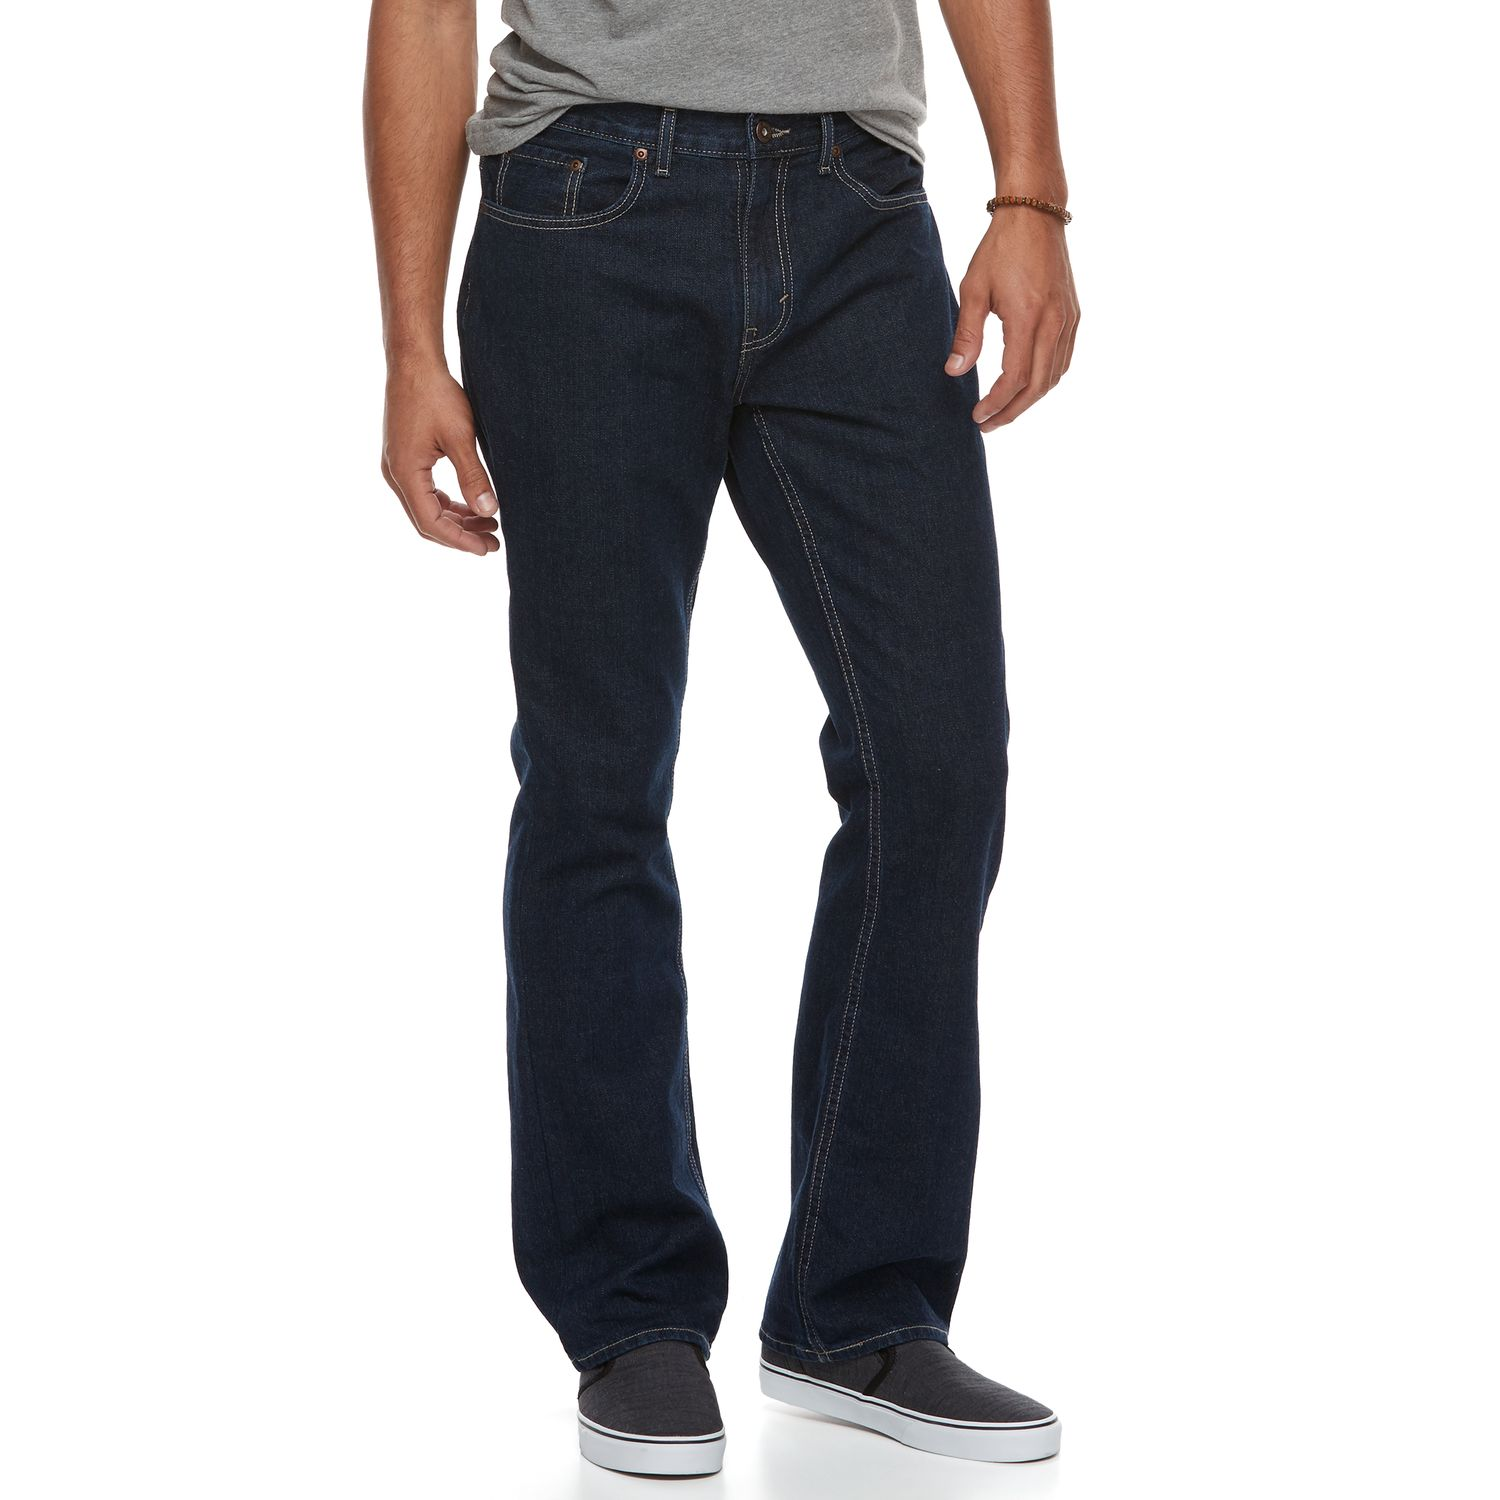 Urban pipeline relaxed fit bootcut jeans